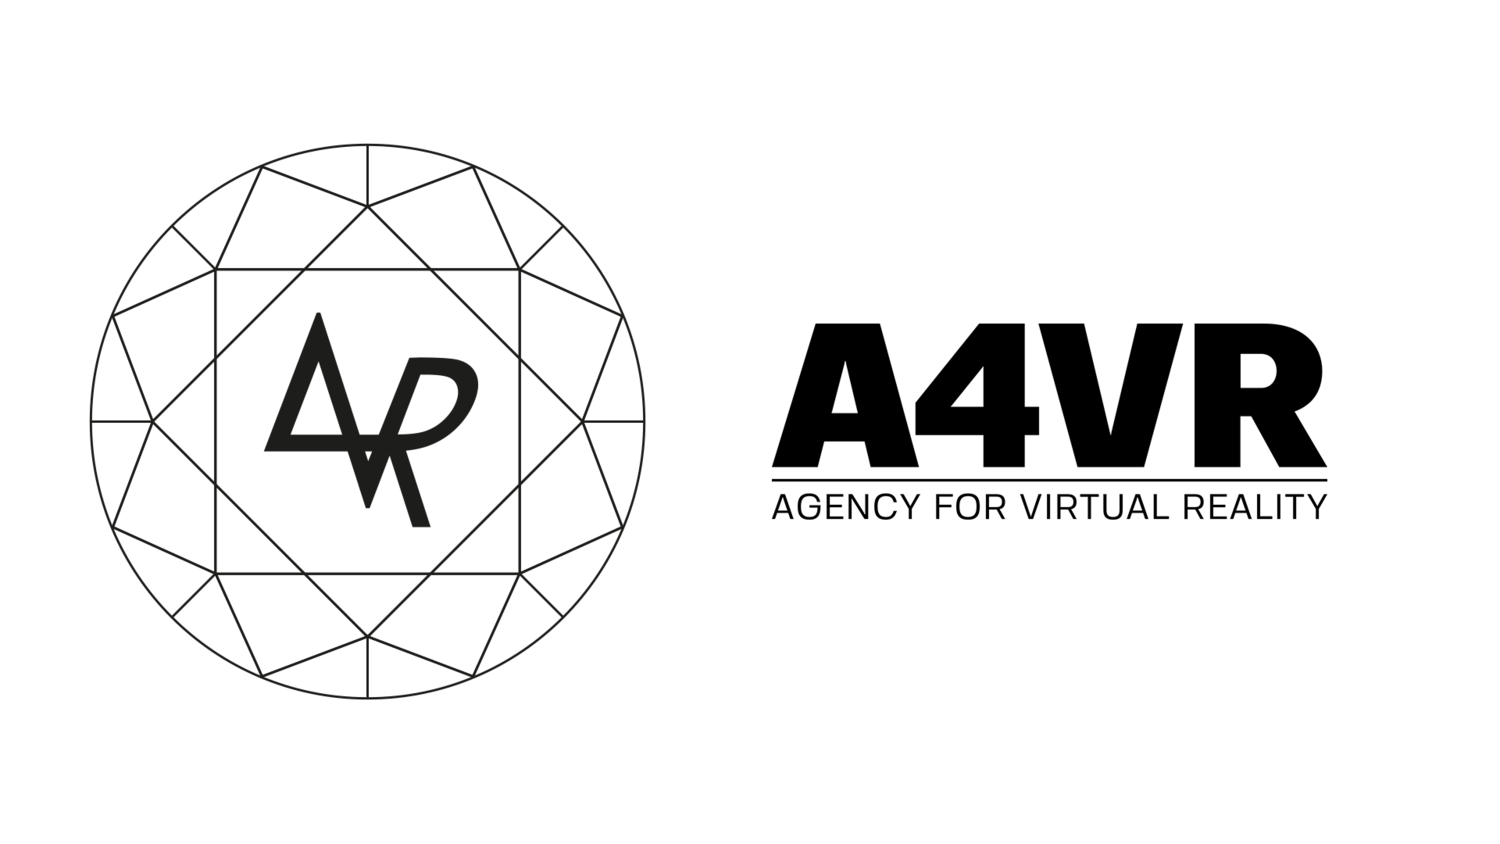 A4VR The Agency for Virtual Reality